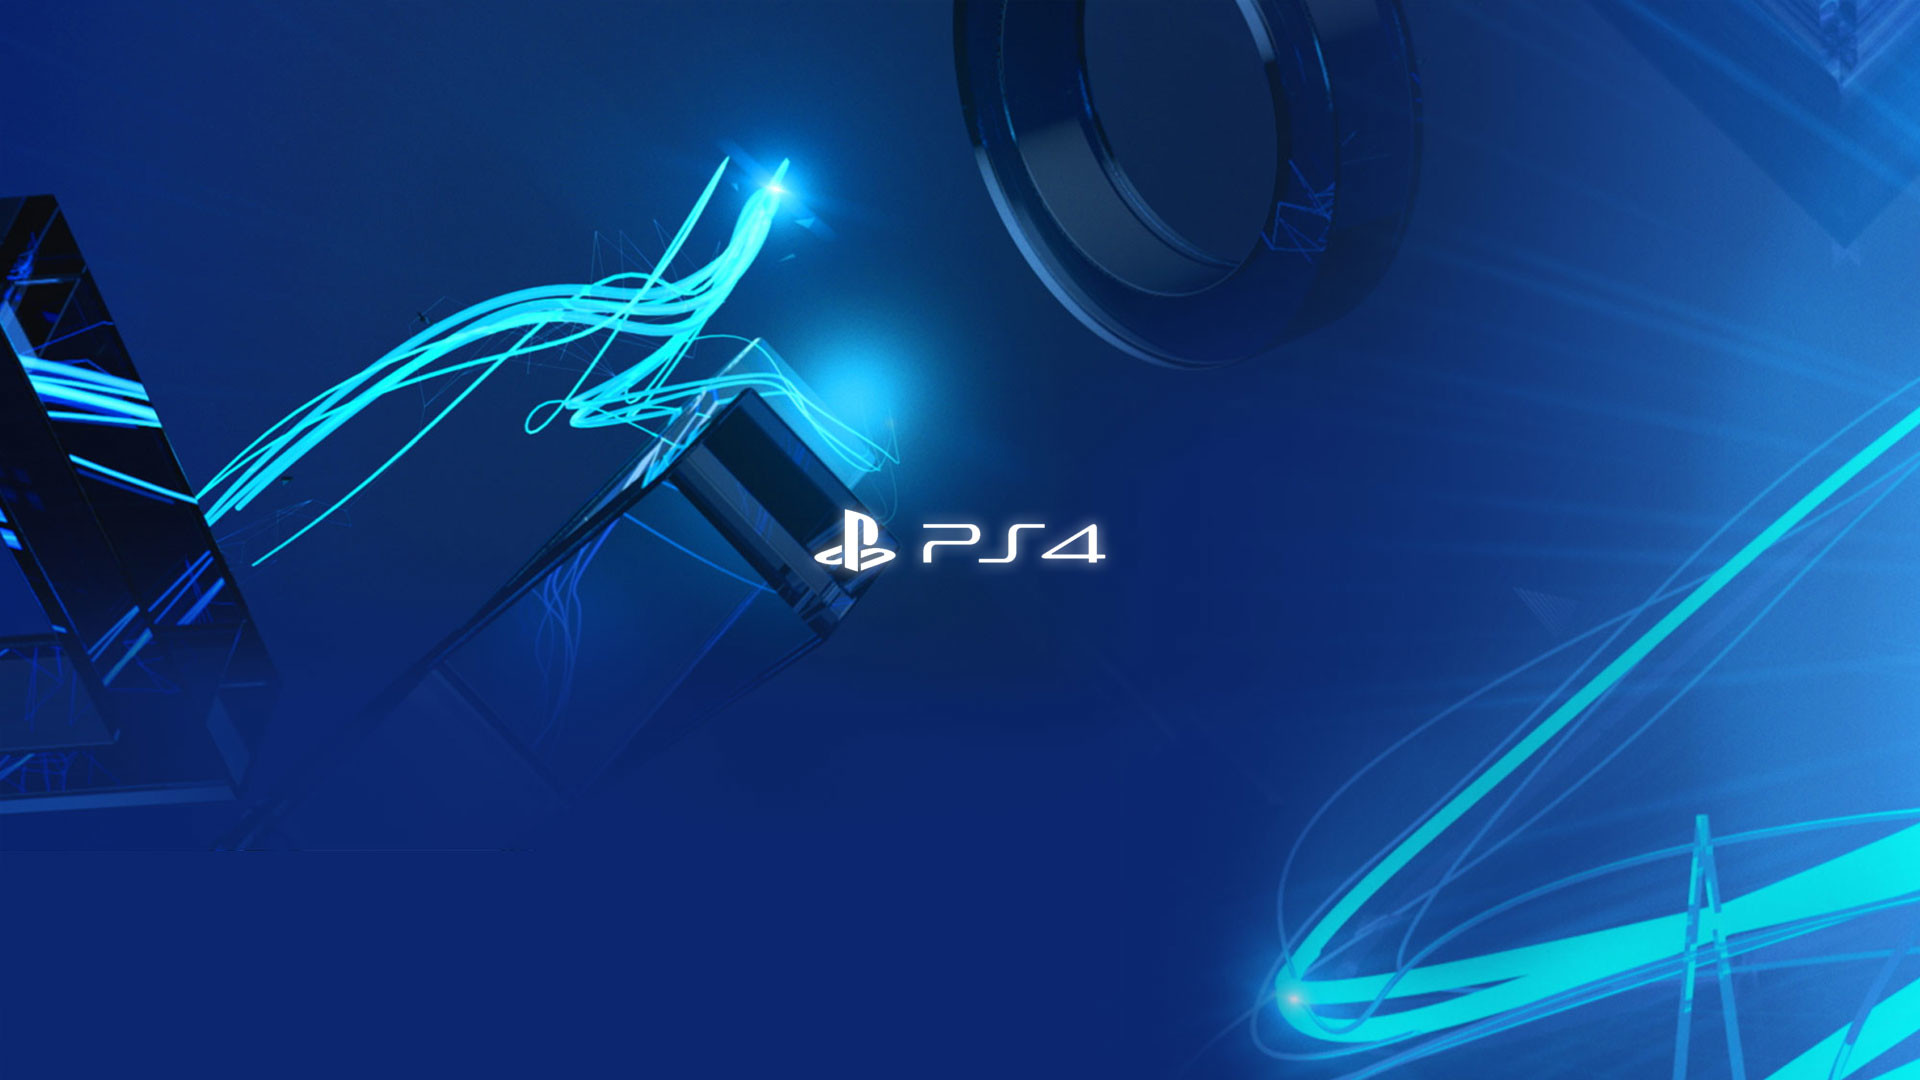 Sony Playstation 4 Wallpapers ·① WallpaperTag